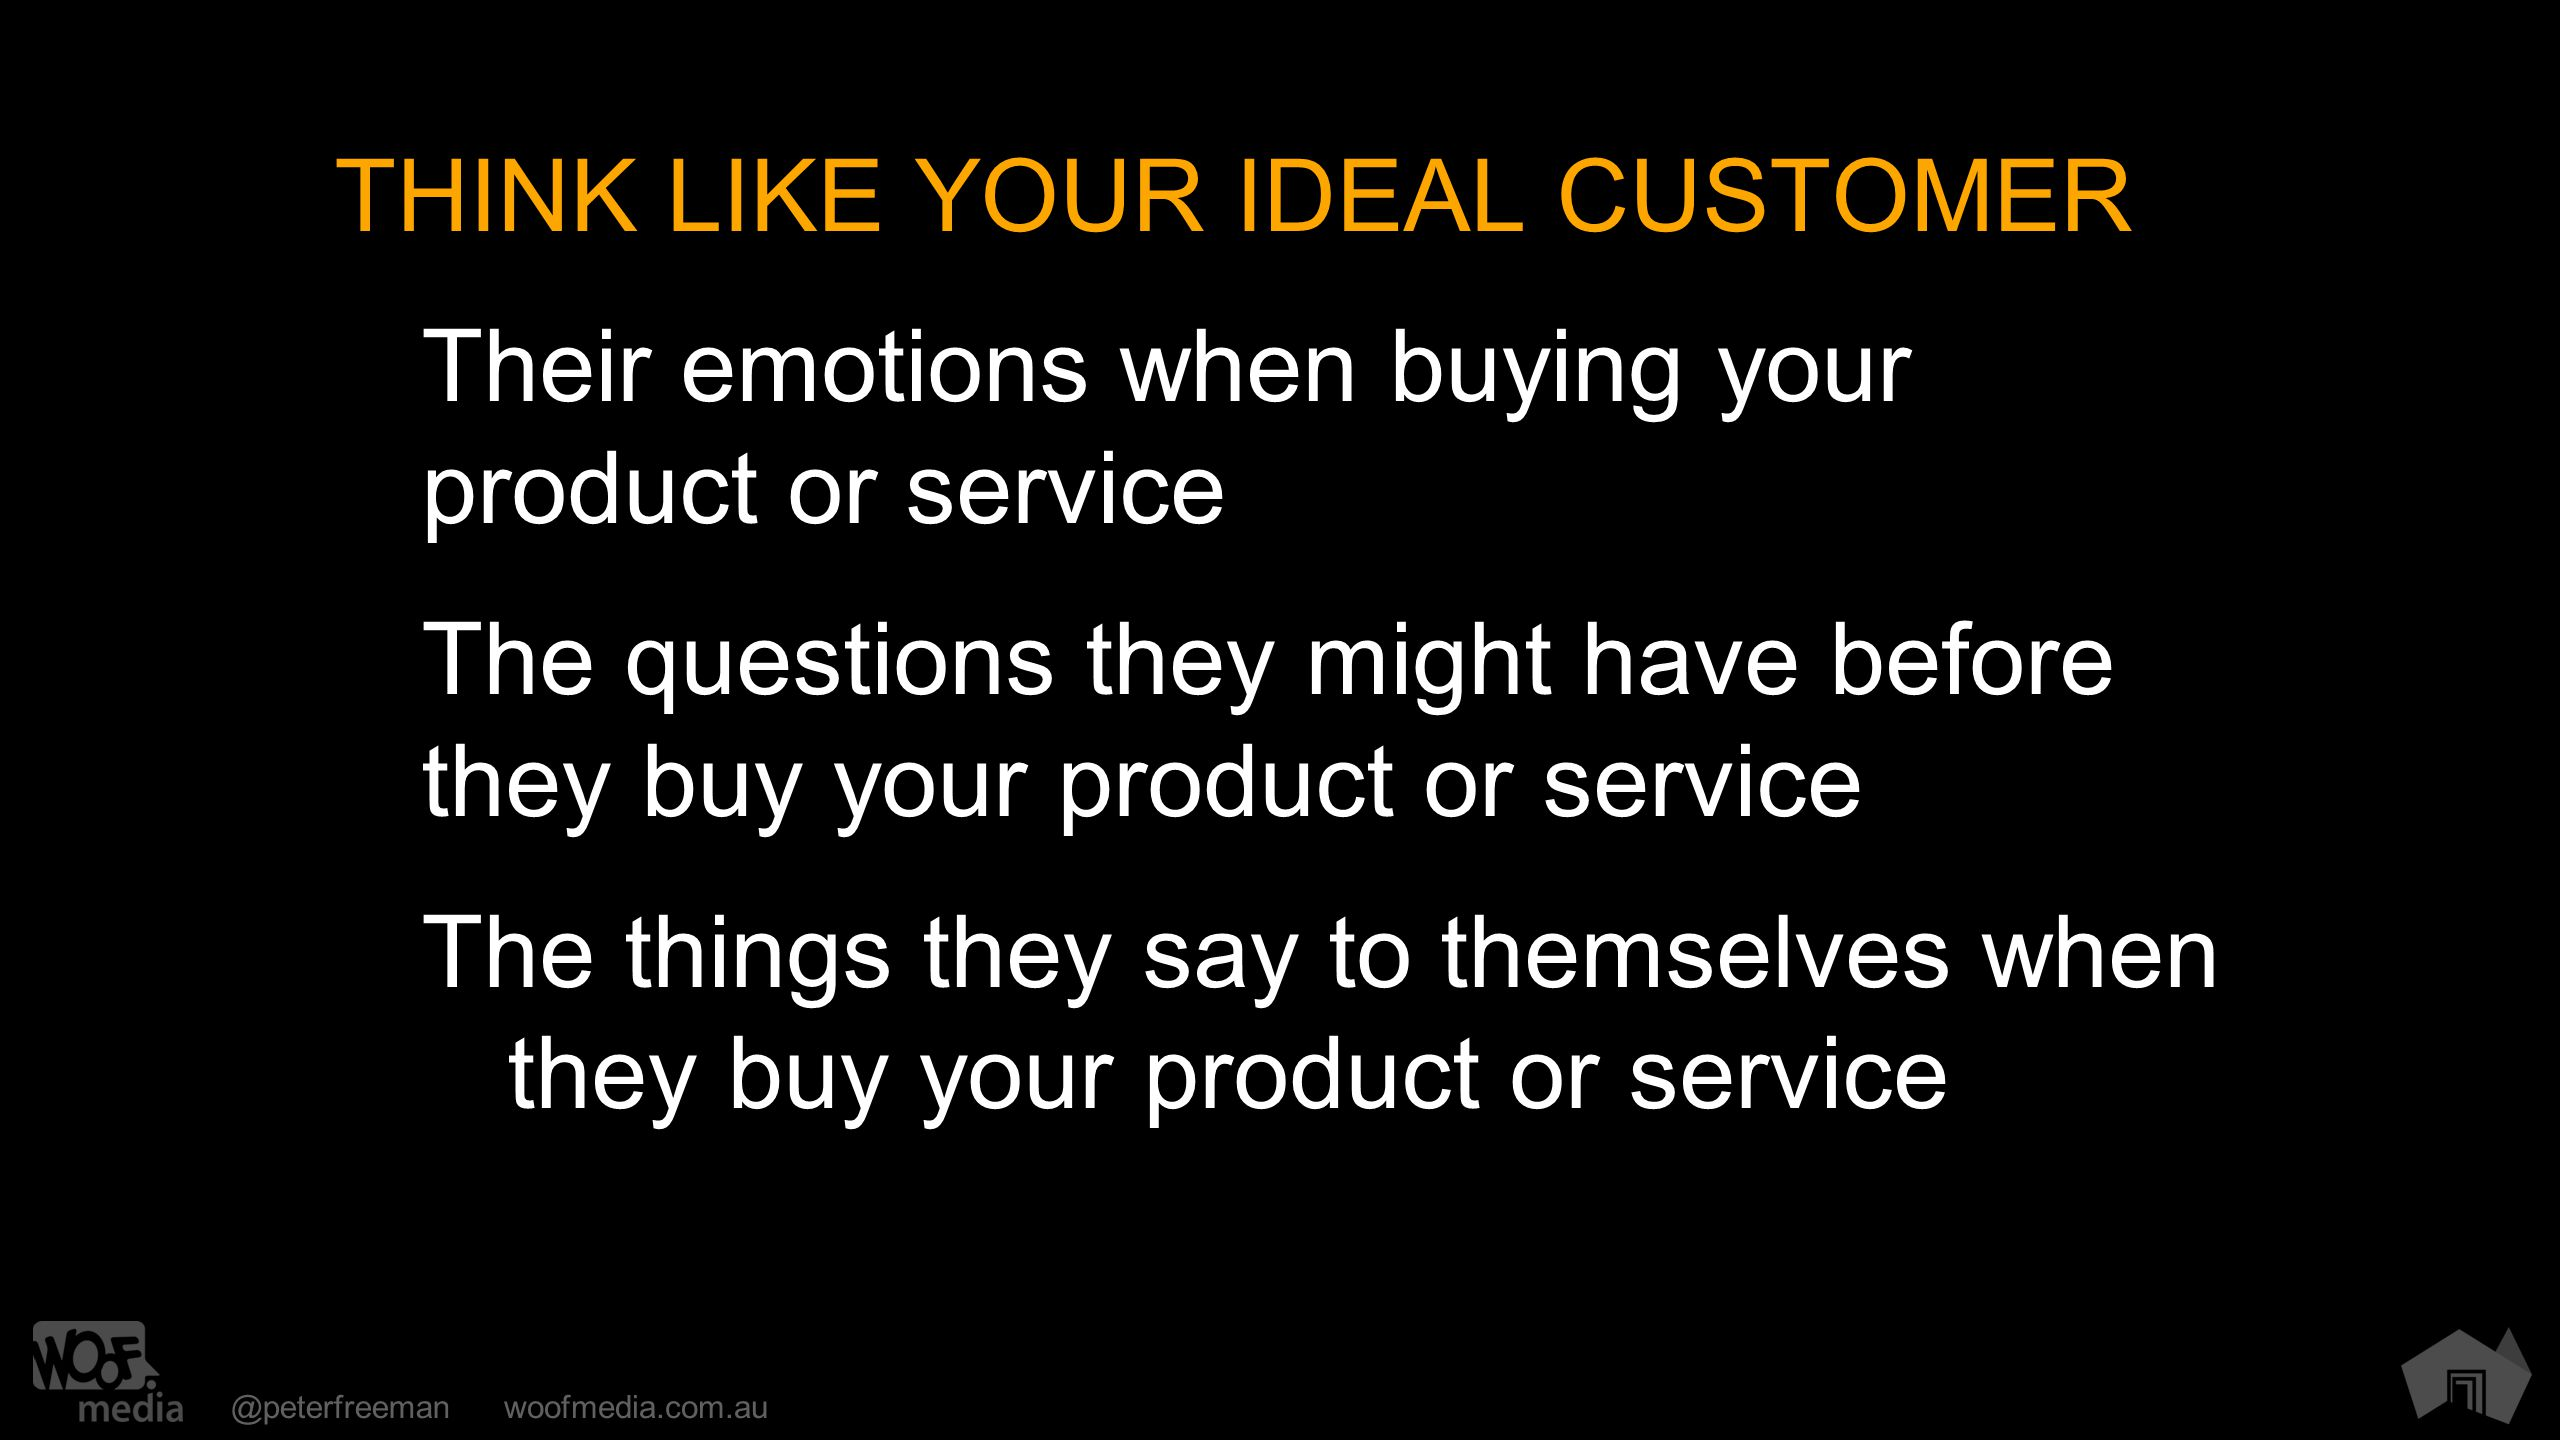 @peterfreemanwoofmedia.com.au THINK LIKE YOUR IDEAL CUSTOMER Their emotions when buying your product or service The questions they might have before they buy your product or service The things they say to themselves when they buy your product or service